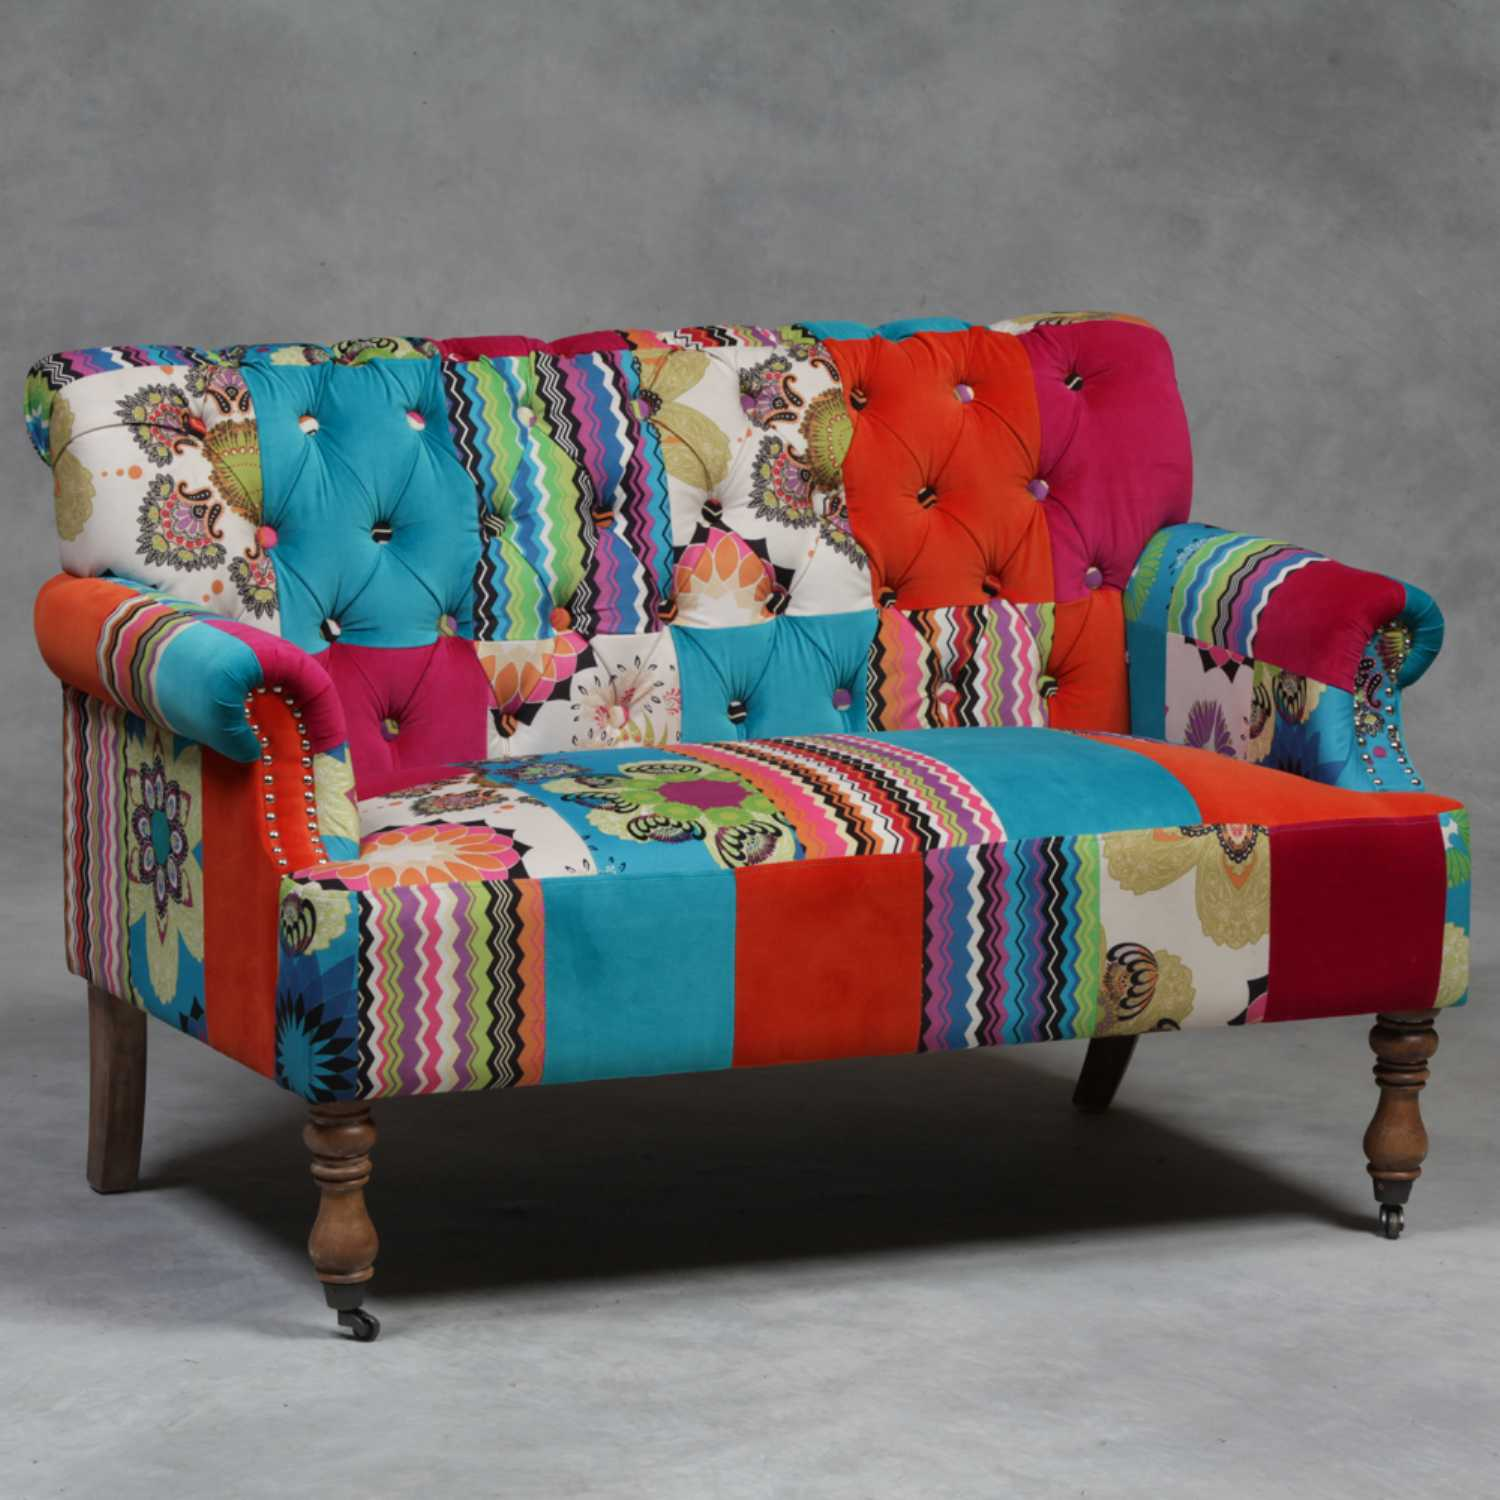 Large london 2 seater patchwork fabric sofa parisarafo Image collections